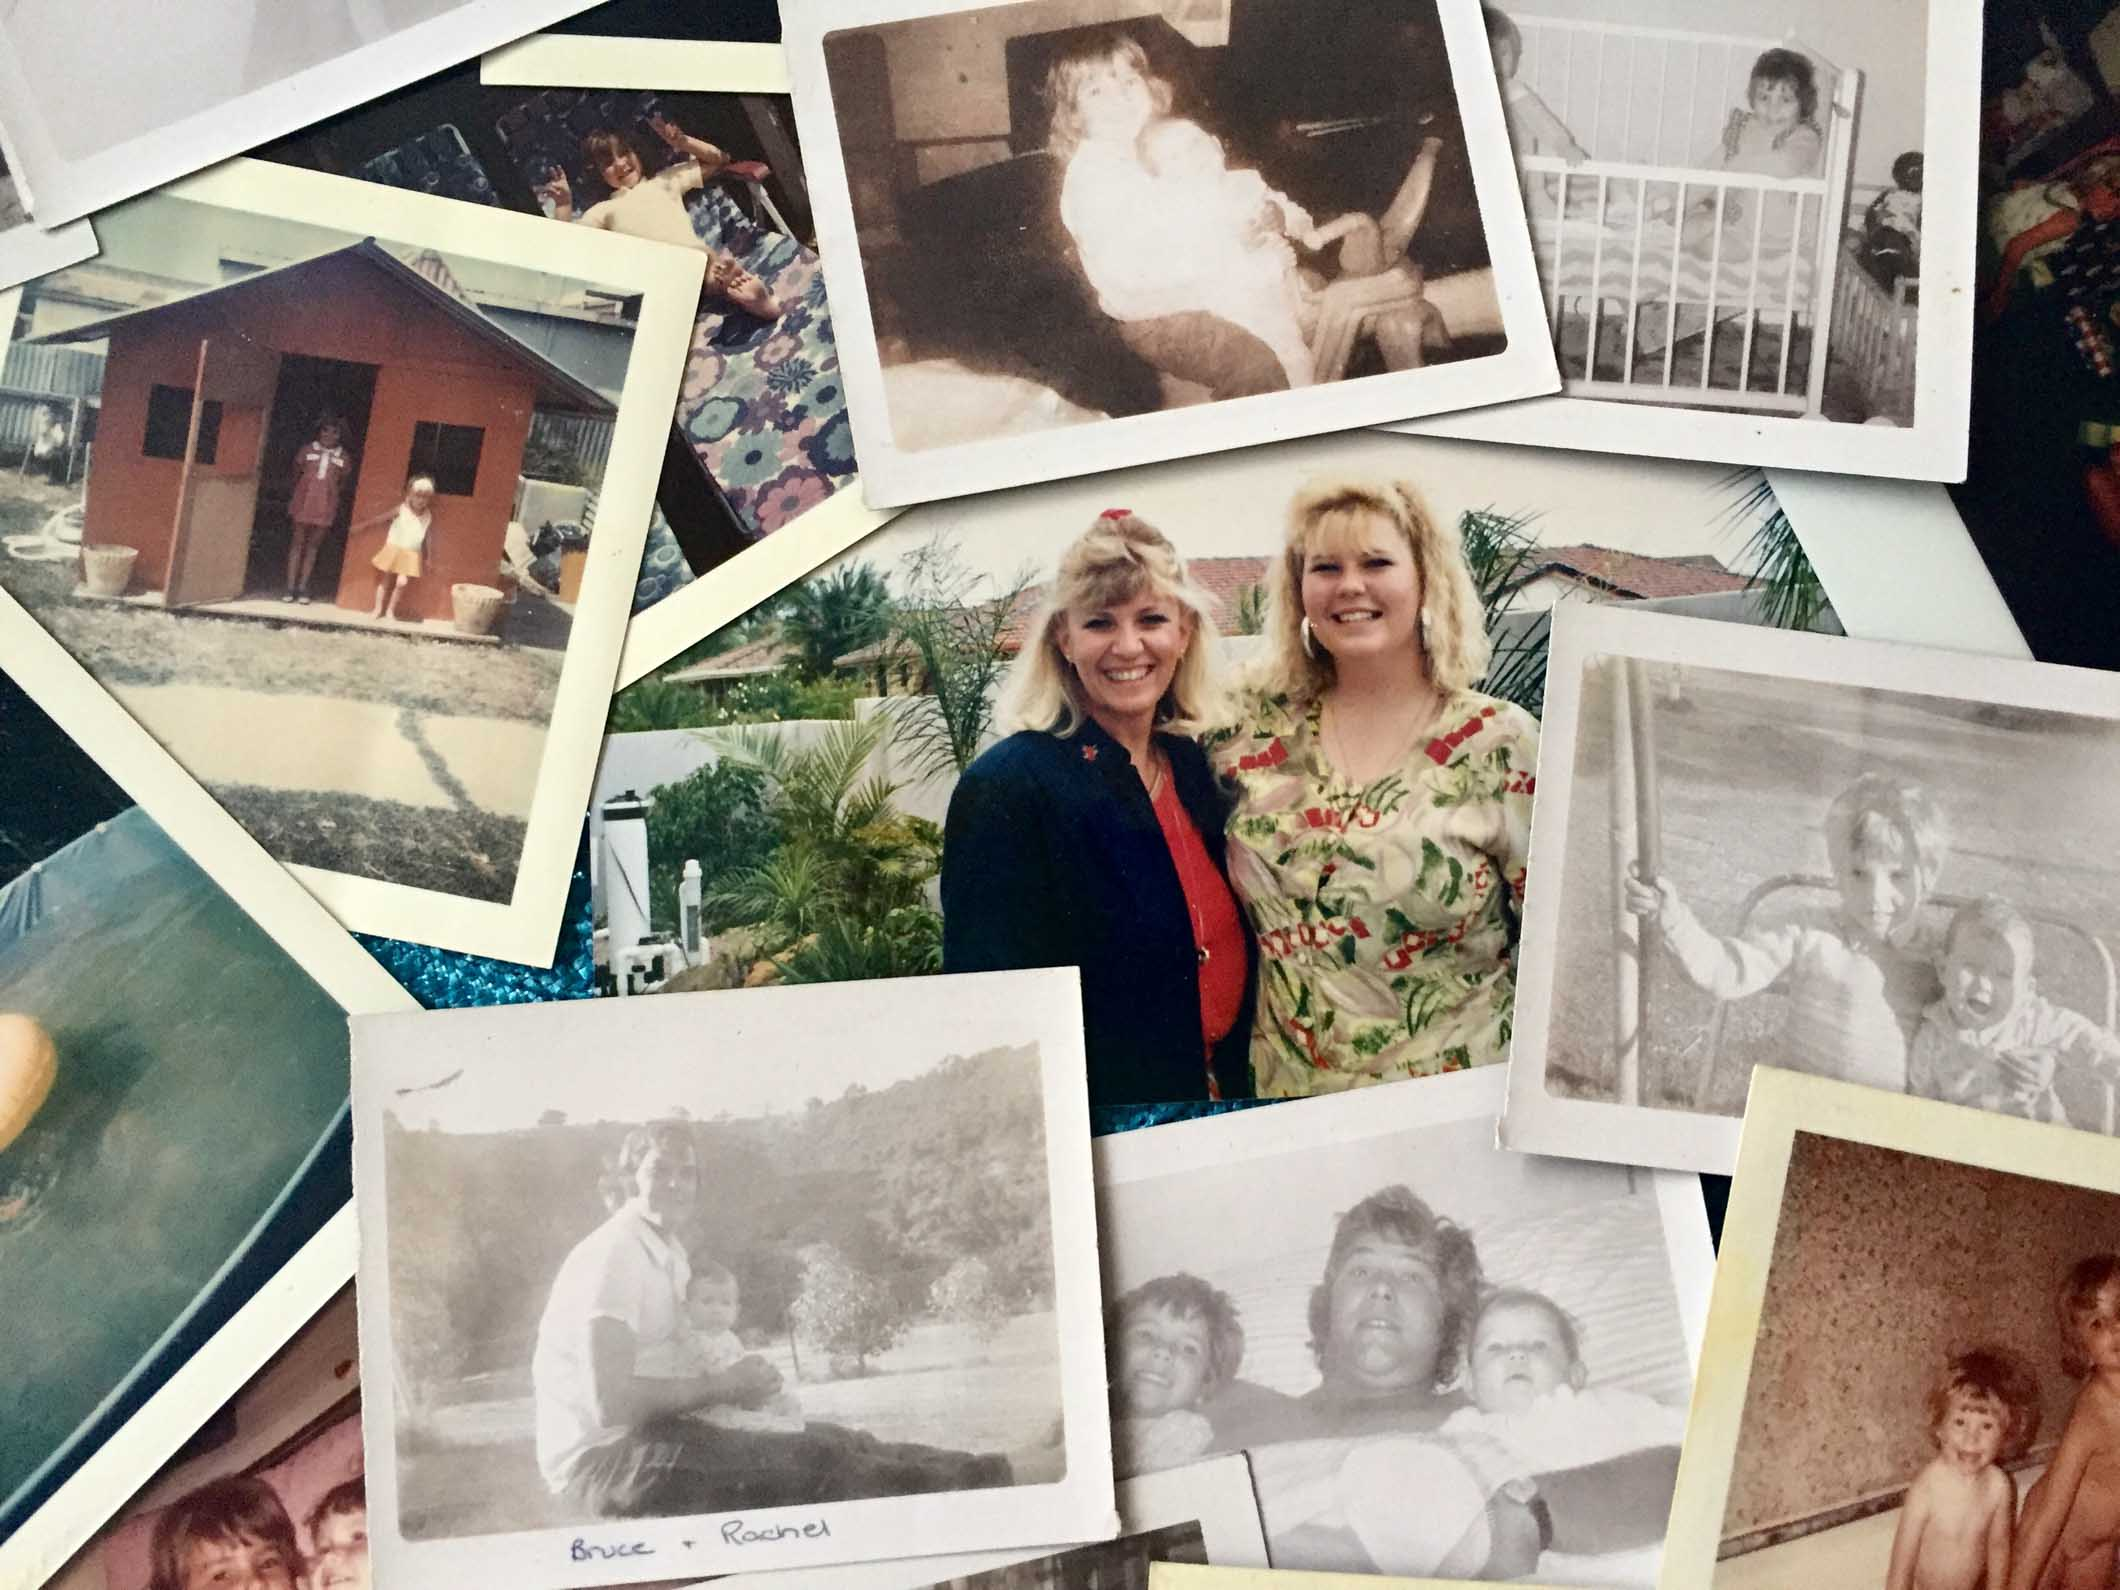 an-image-with-a-collection-of-my-baby-photos-that-were-lost-to-me-but-now-returned-including-an-image-with-me-and-my-mum